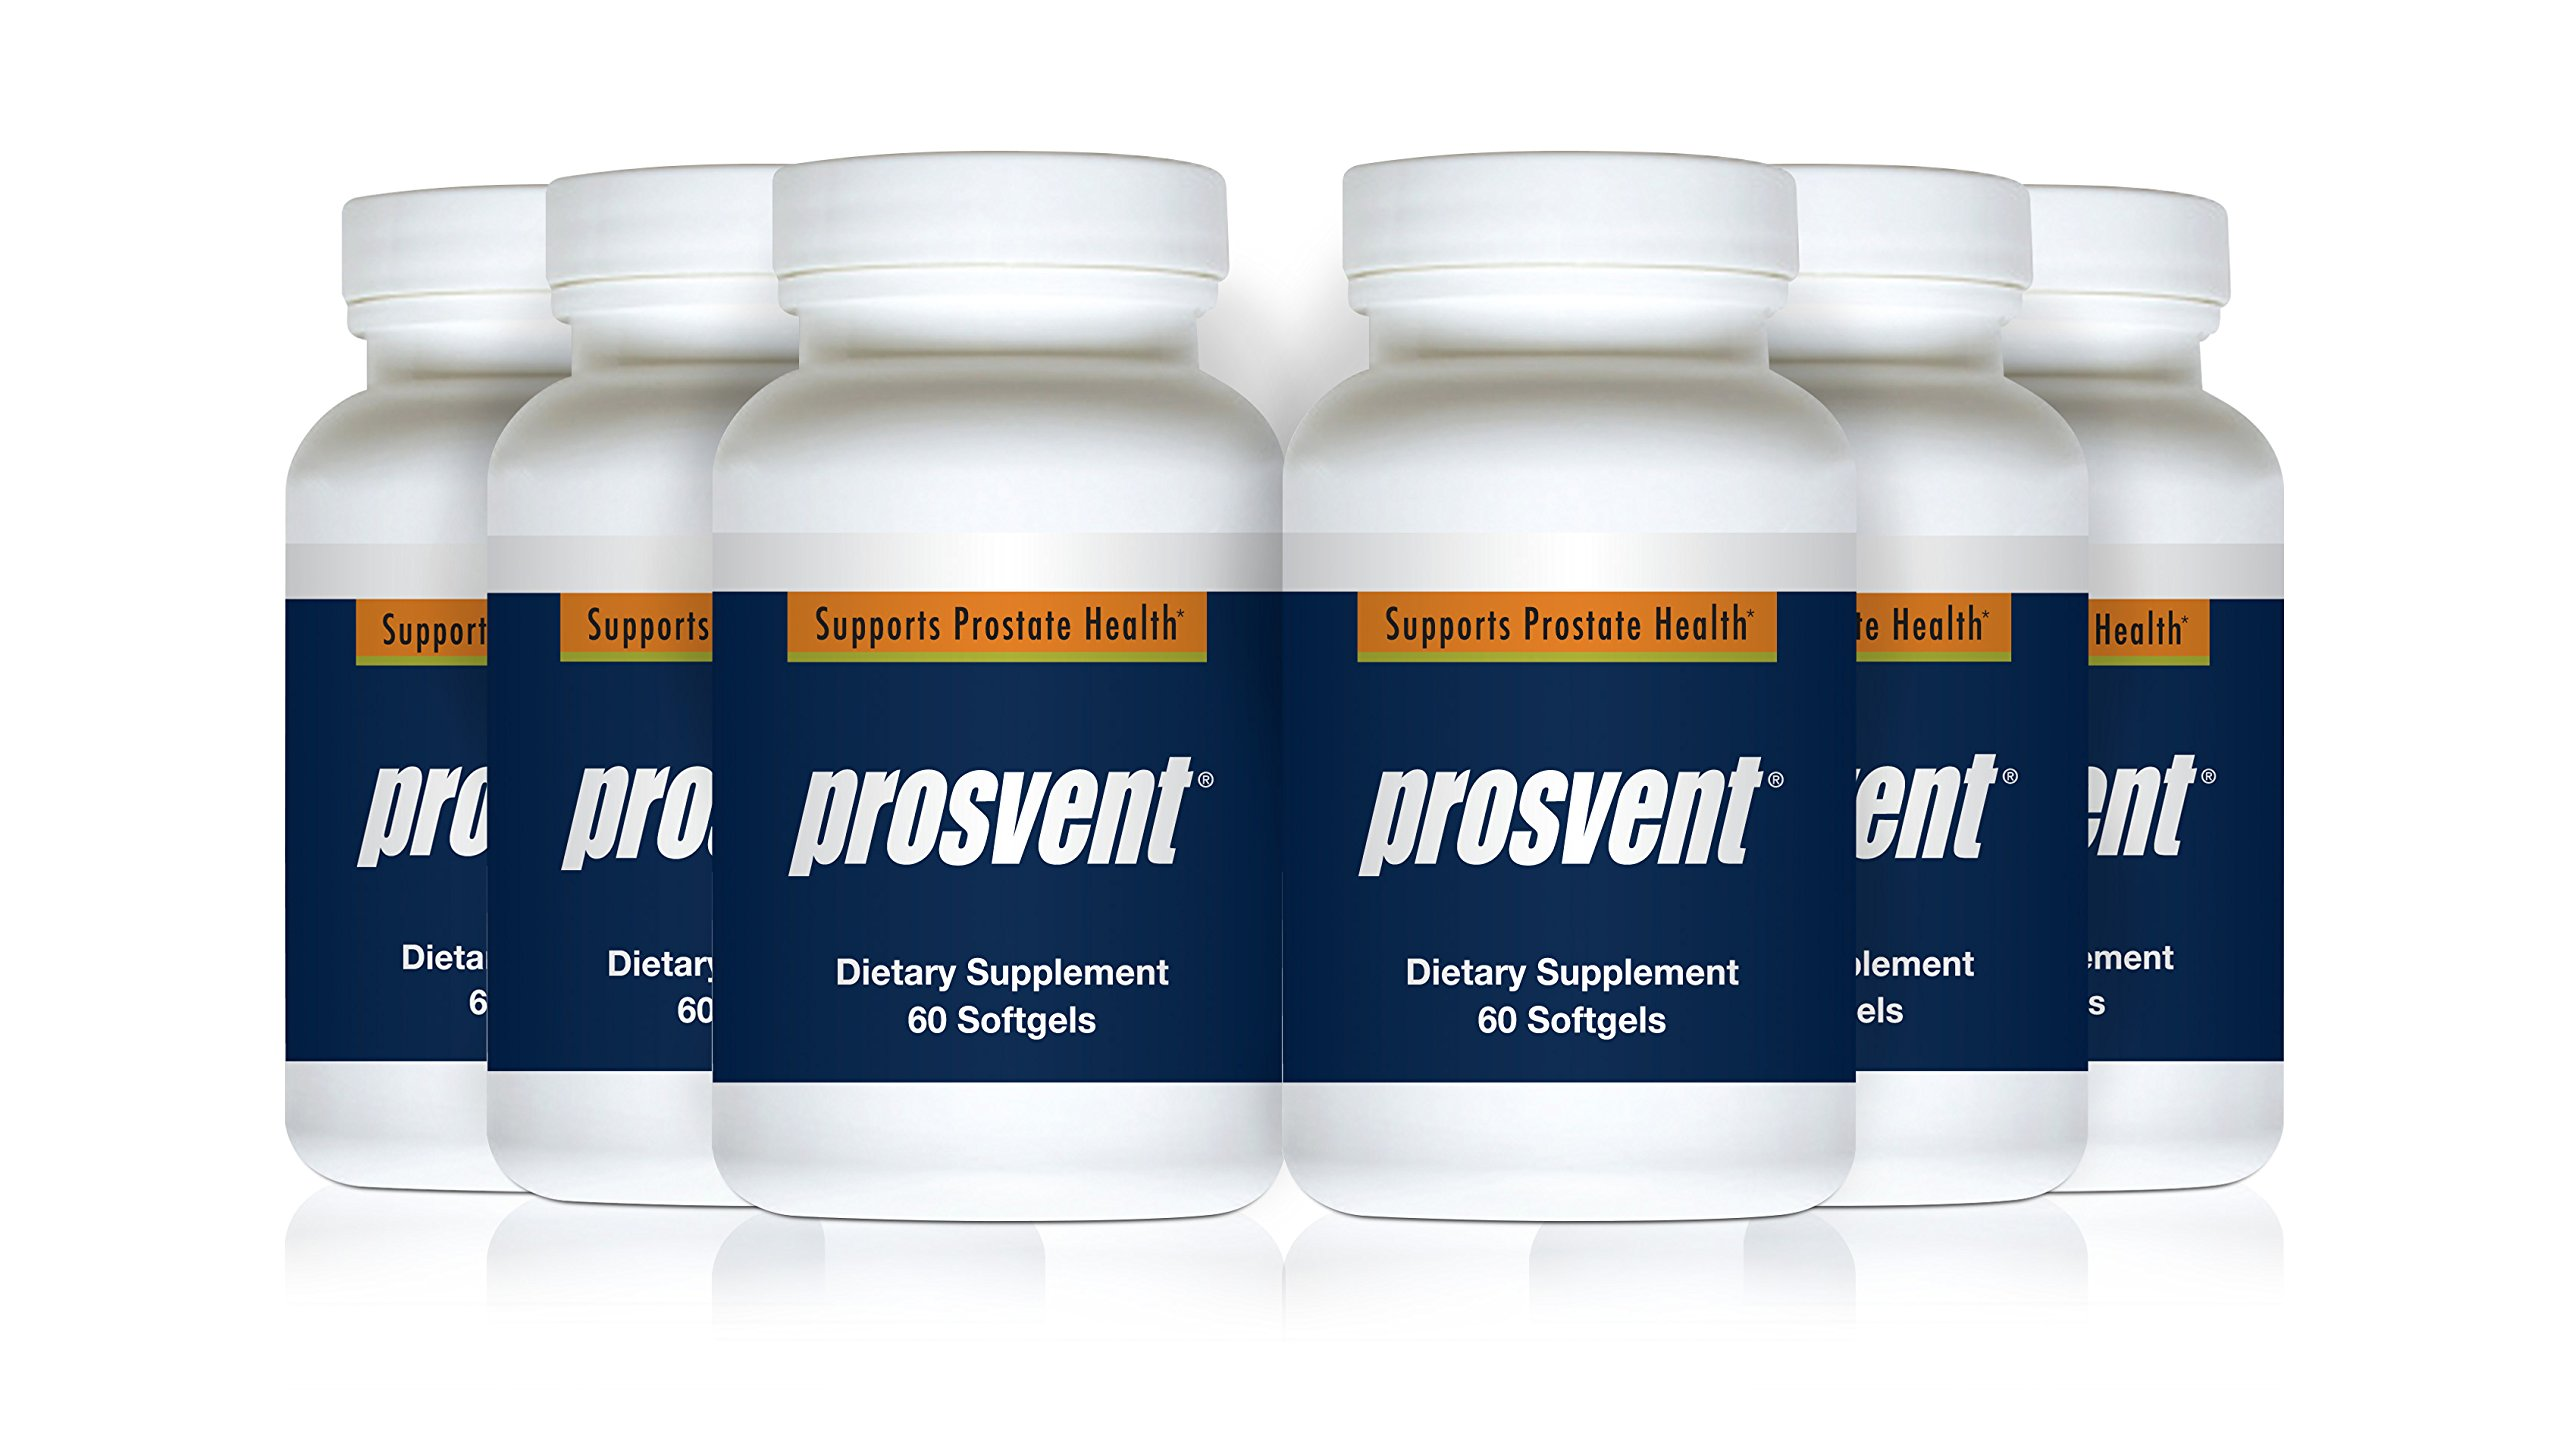 PROSVENT-Natural Prostate Health Supplement -Clinically Tested Ingredients- Reduce Urgency & Frequency. Improve Flow, Sleep, Health & Quality of Life. Over 180 Million DOSES Sold! –6 Month Supply